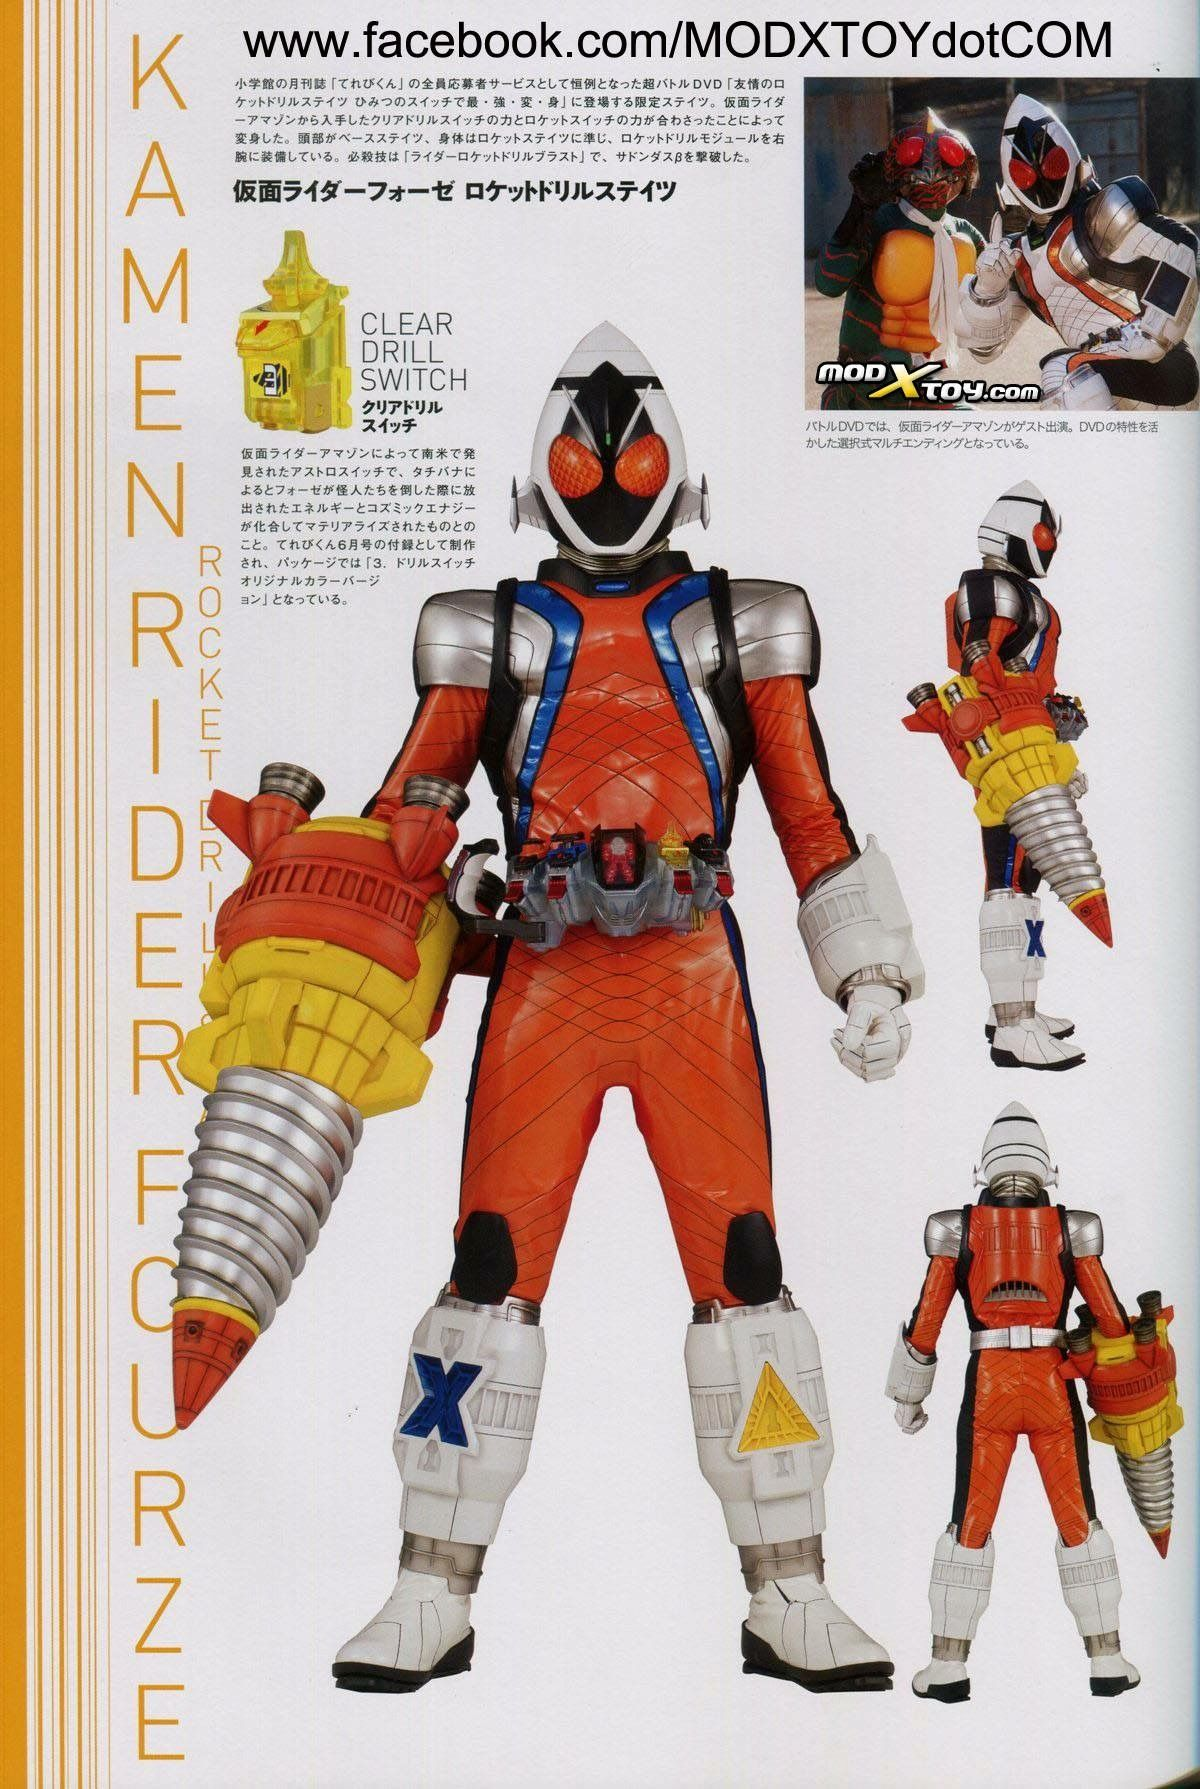 kamen rider fourze rocket drill state 仮面ライダーフォーゼ 仮面ライダー ヒーロー